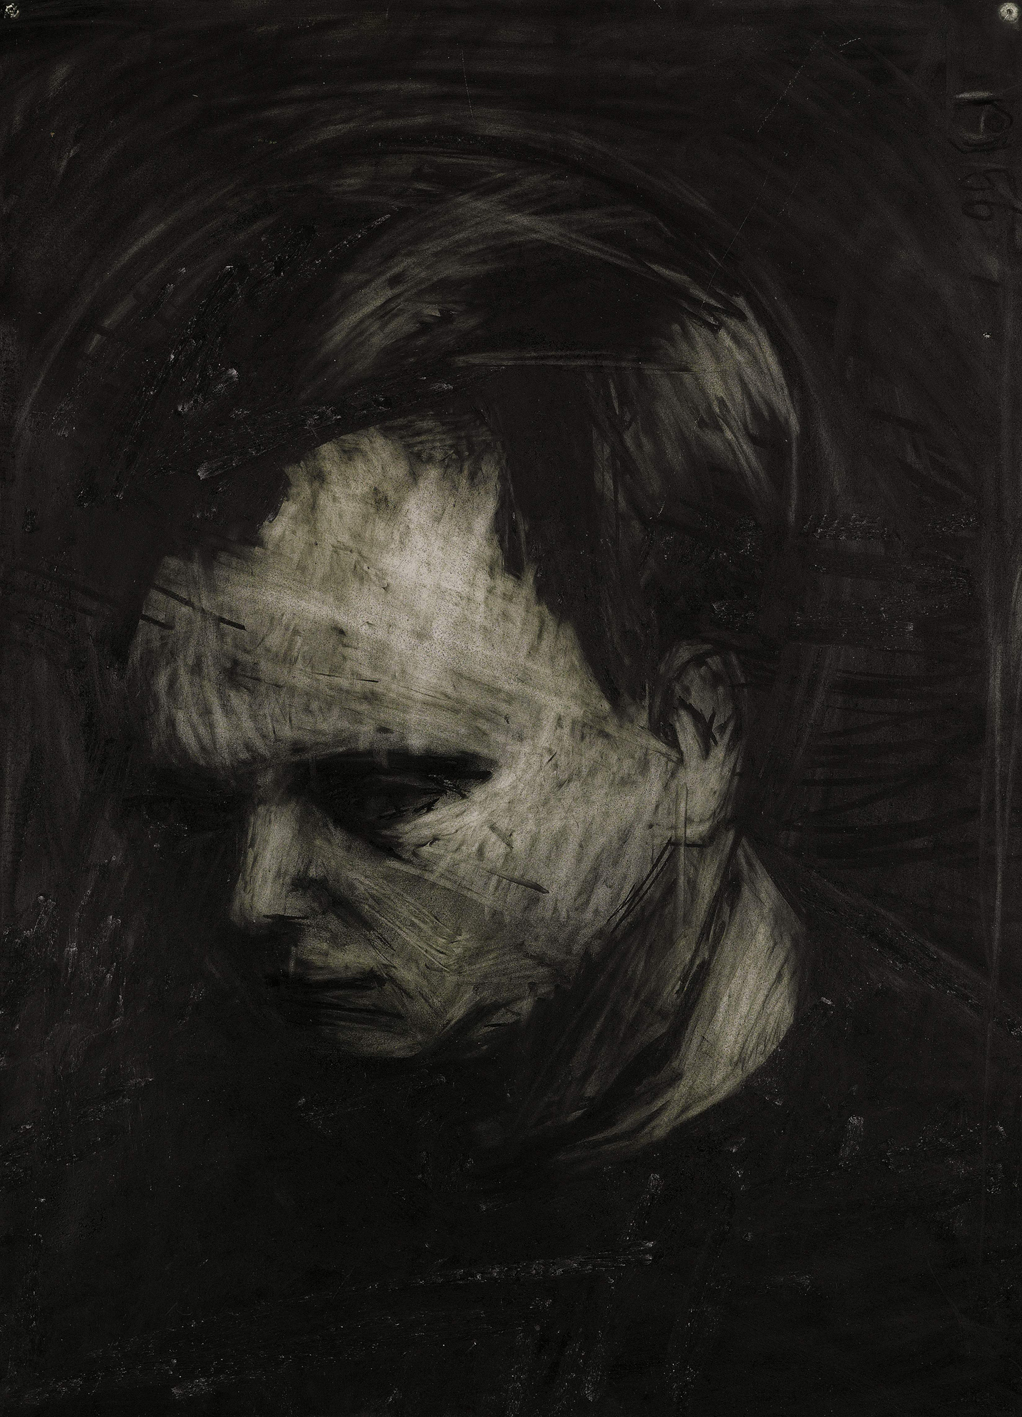 Frank Auerbach (1962), charcoal and chalk on paper, 30 x 22in (76 x 56cm). Est. 60,000-80,000 GBP